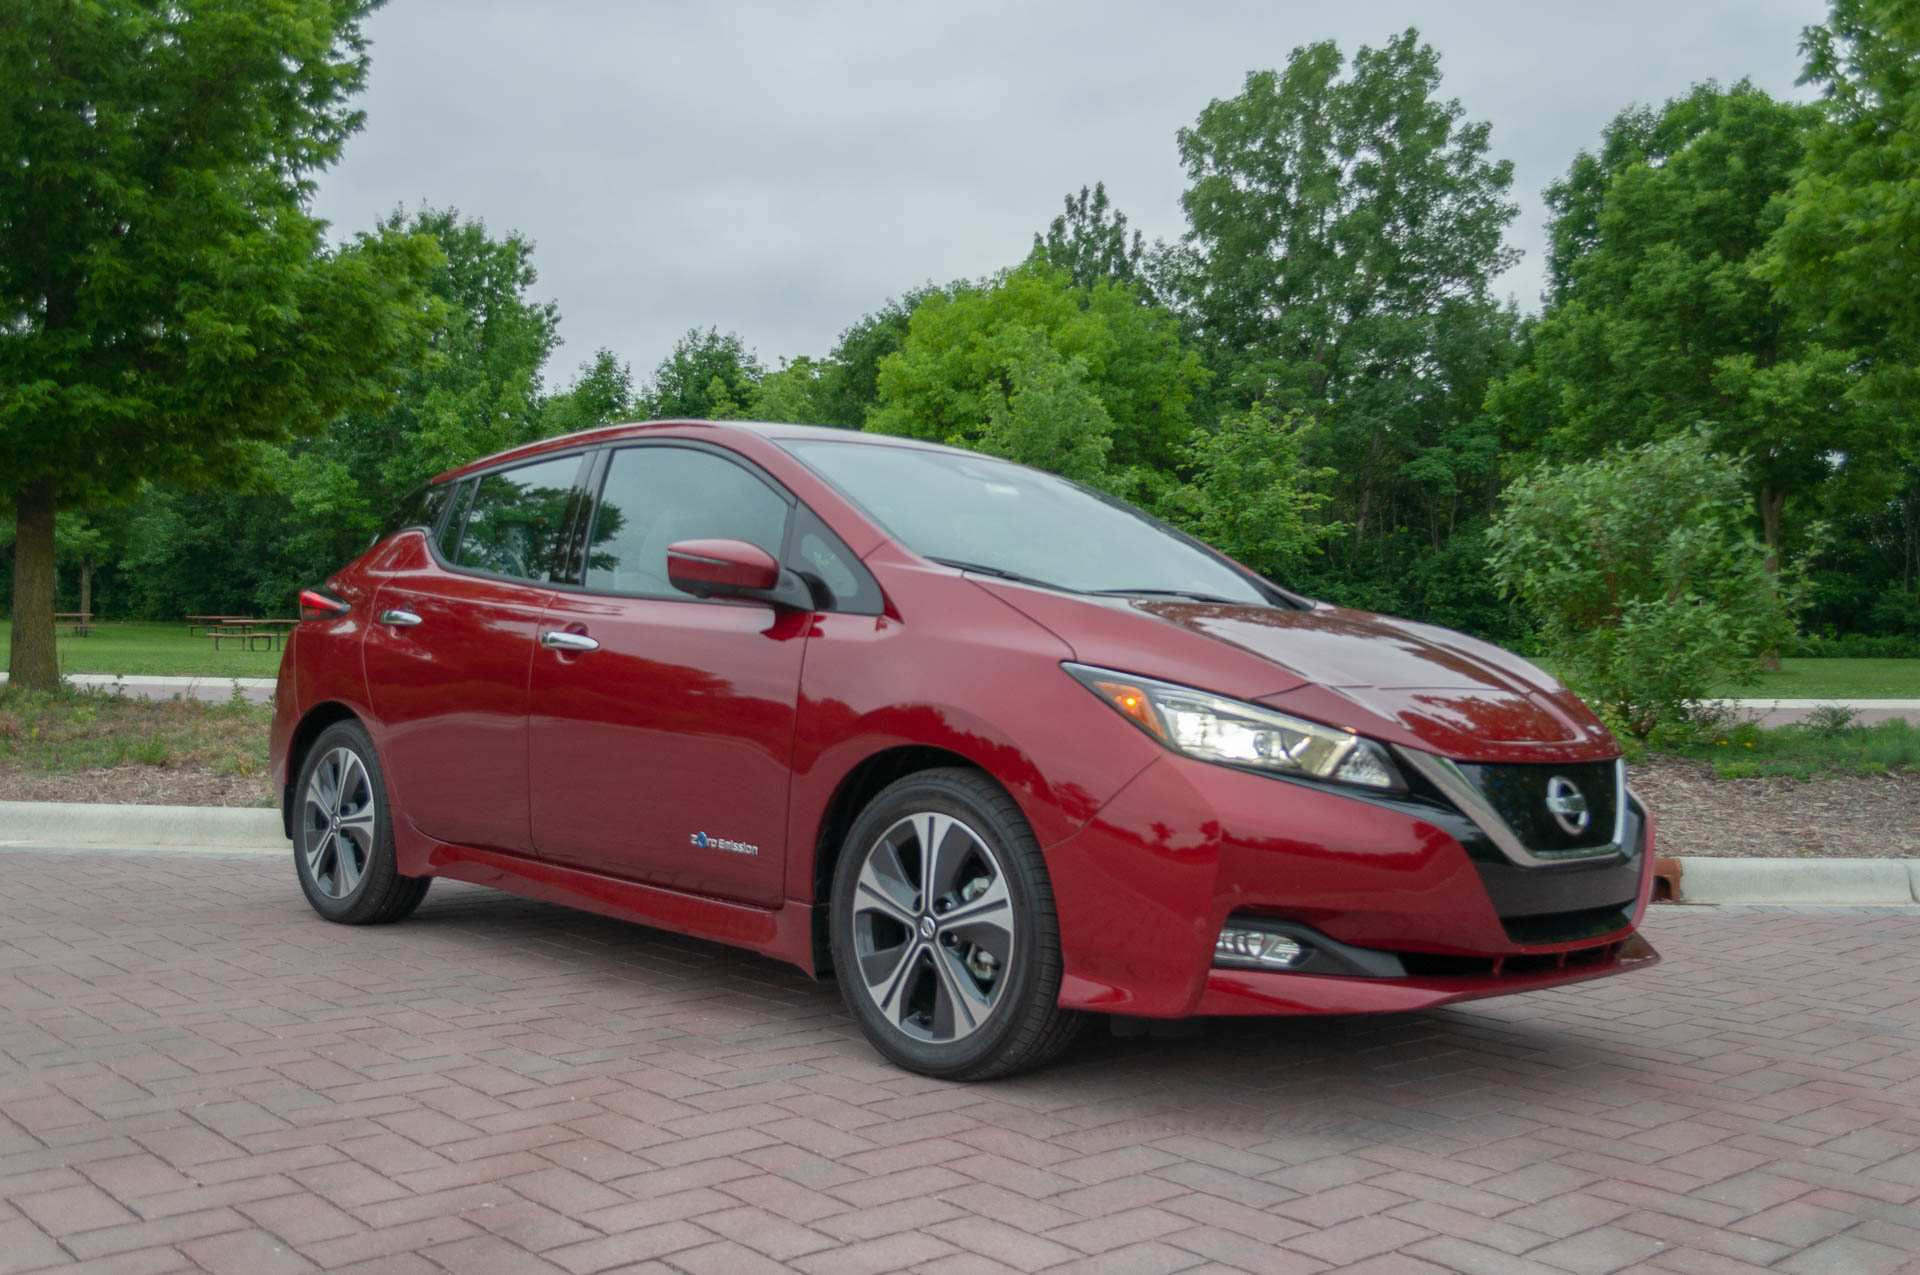 58 New 2019 Nissan Leaf Review Rumors